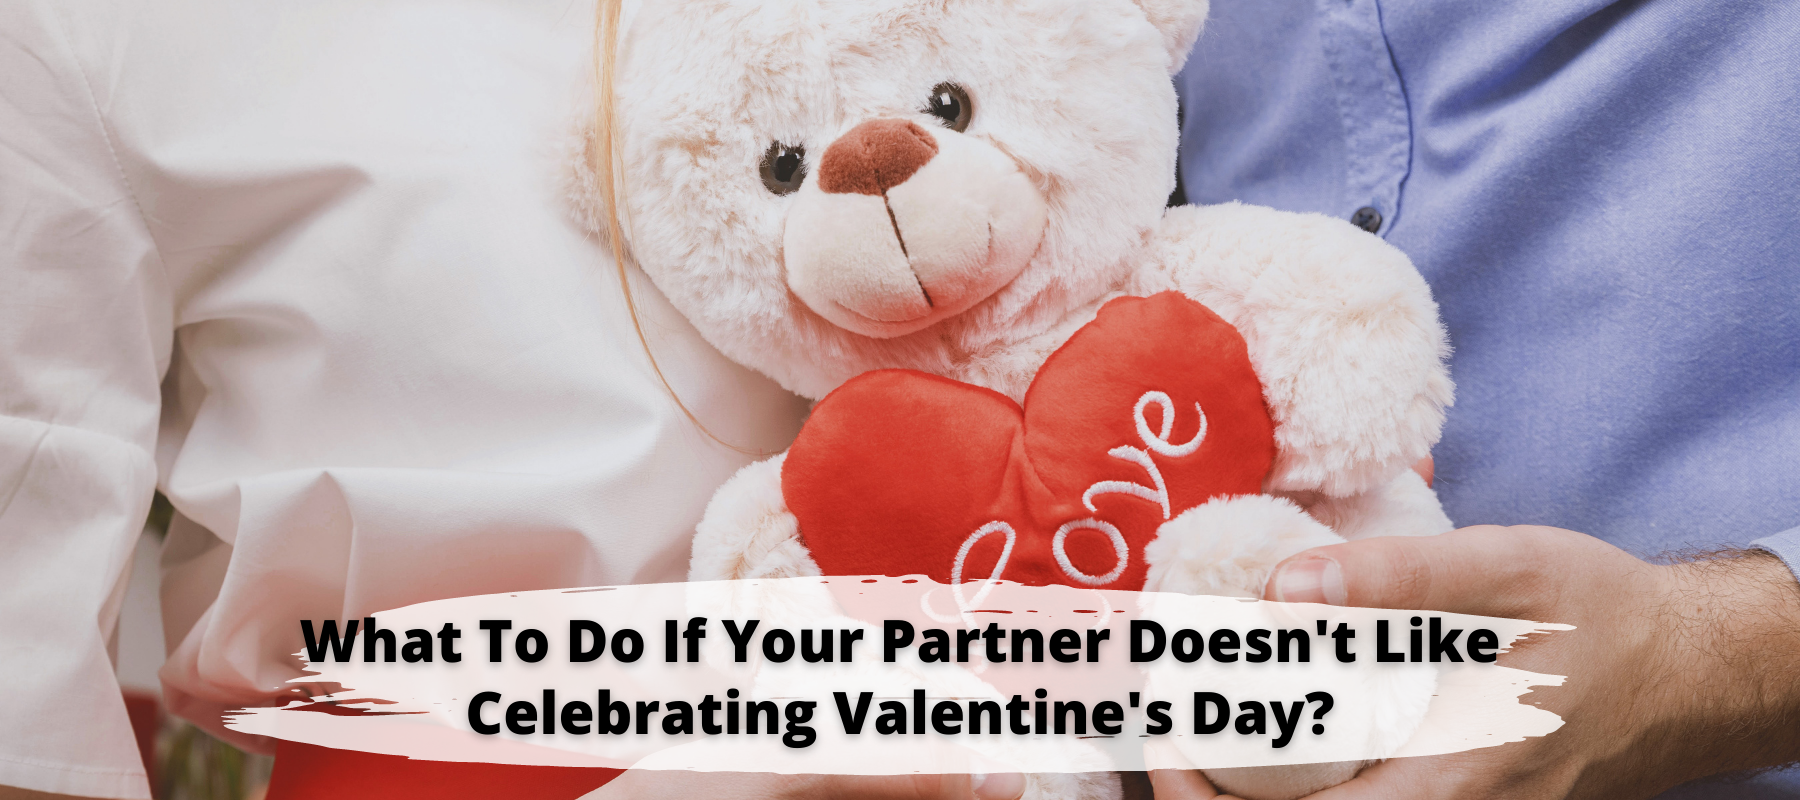 What to do if your partner doesn't like Valentine's Day